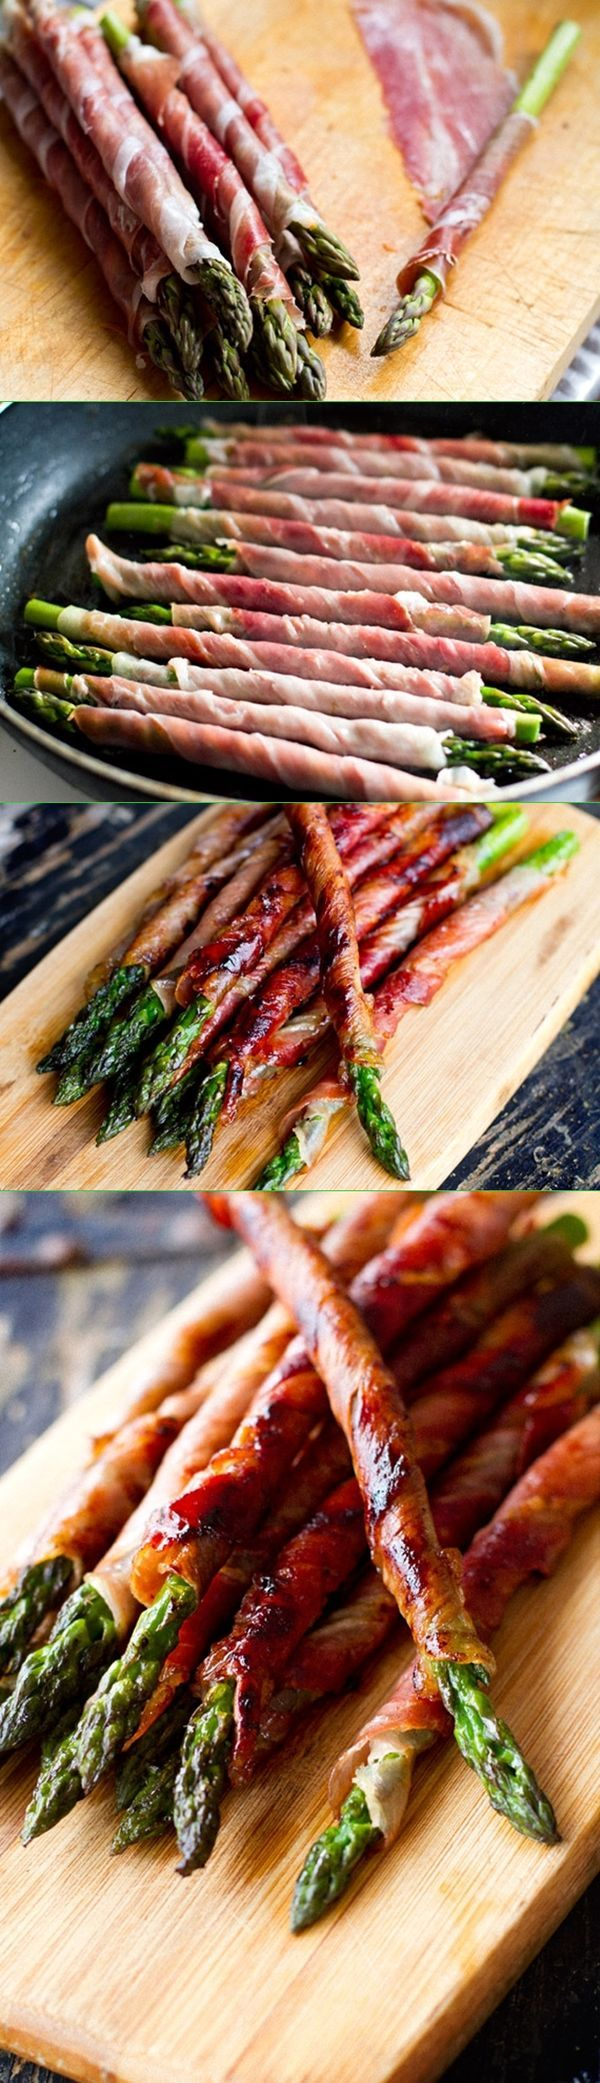 Parma ham and green asparagus prosciutto di Parma e asparagi verdi delicious food yummy recipes